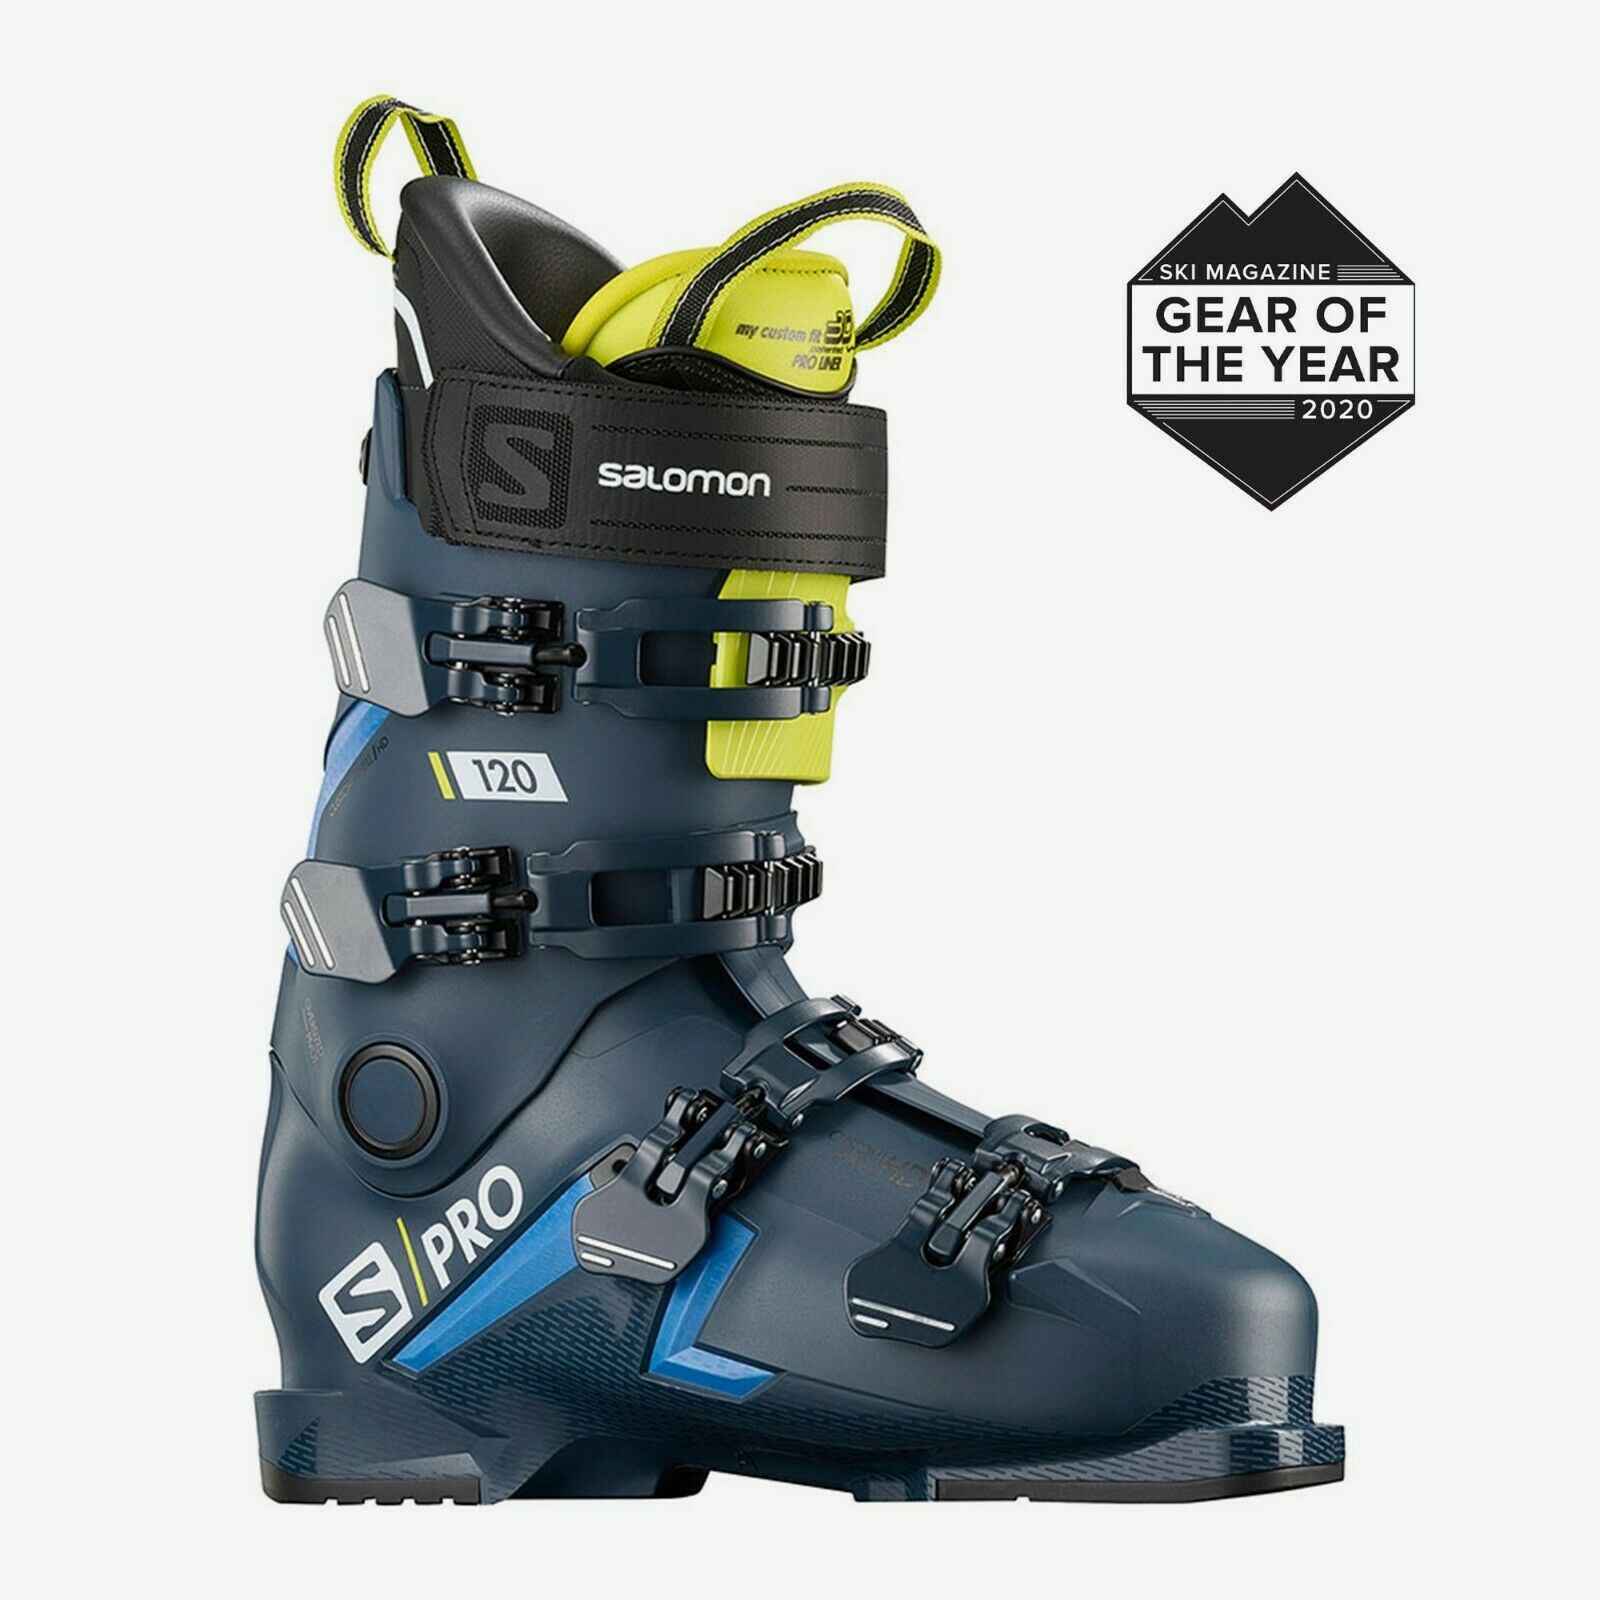 Boots Skiing Skiboot Race  Carve salomon S   pro 120 Season 2020  free shipping & exchanges.